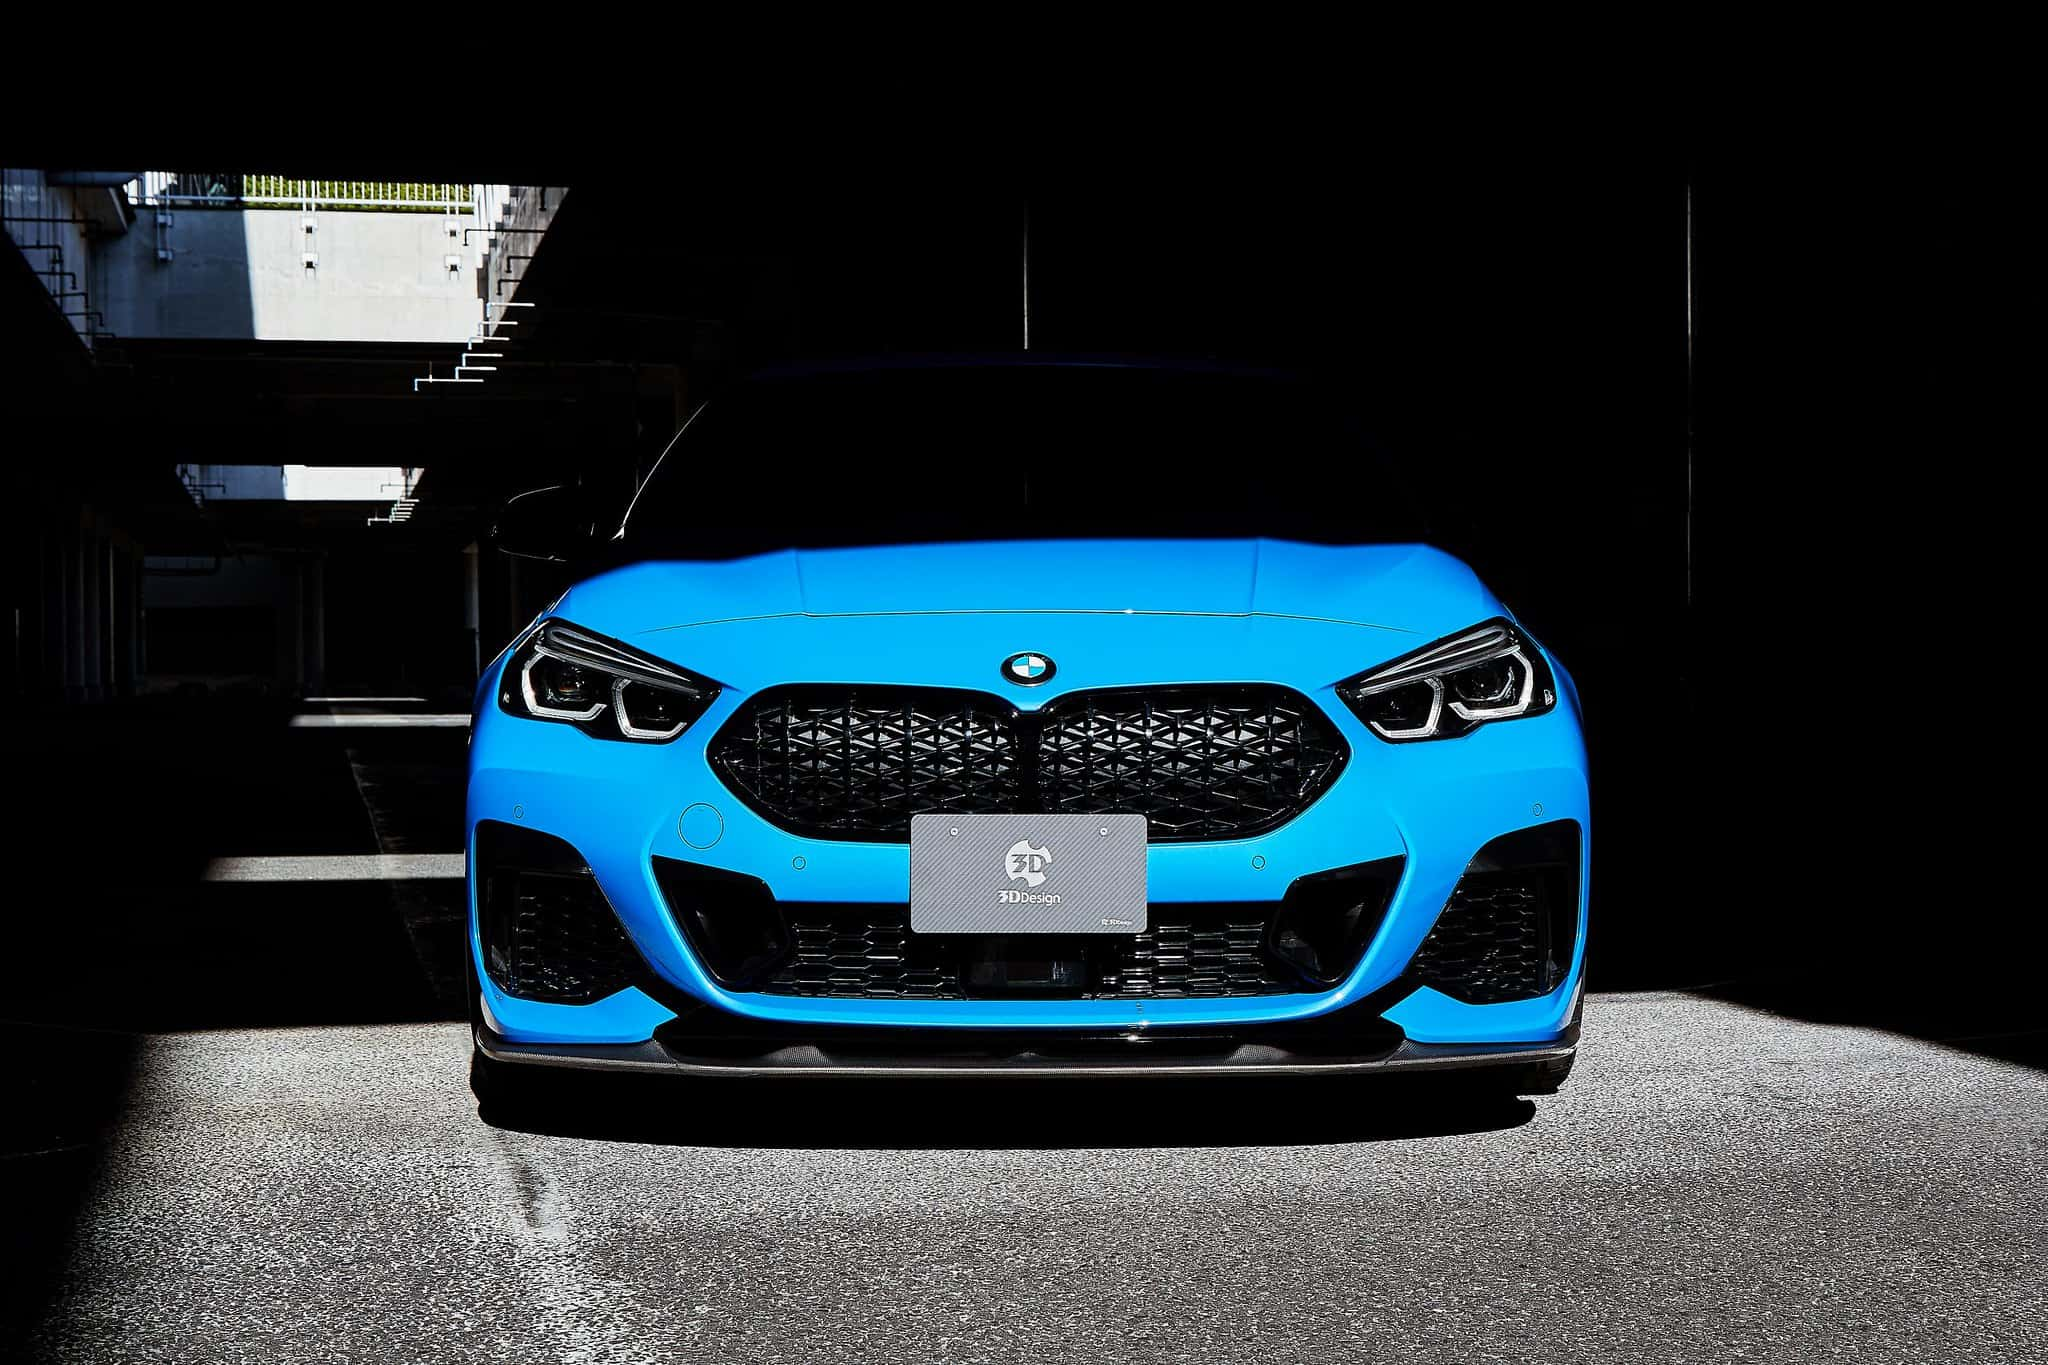 BMW 2 Series Gran Coupe carbon body kit by 3Ddesign